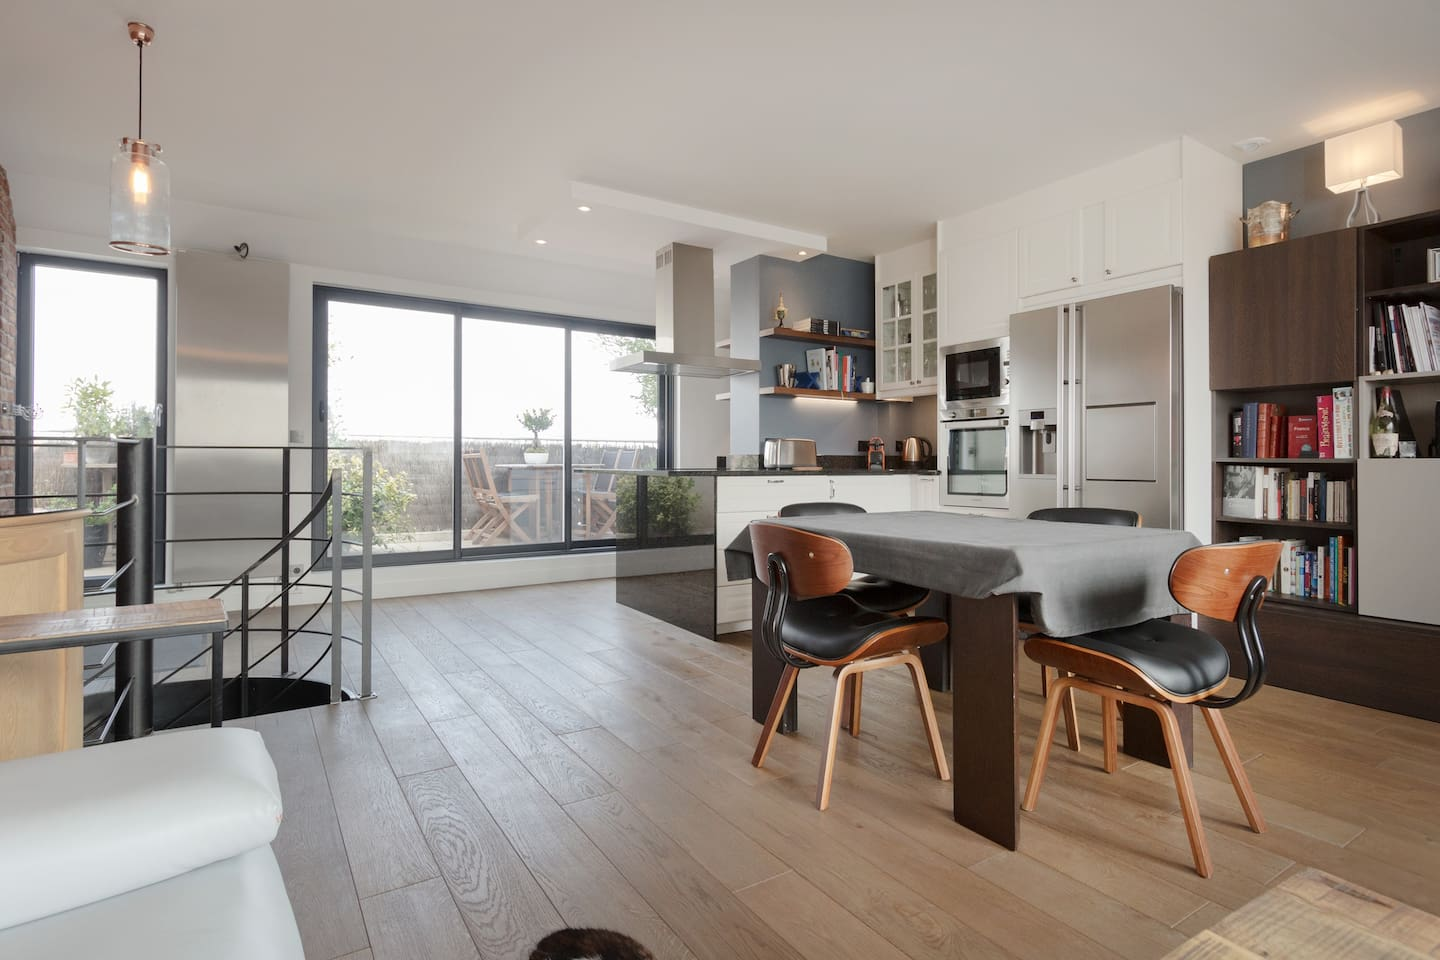 Living space and open kitchen